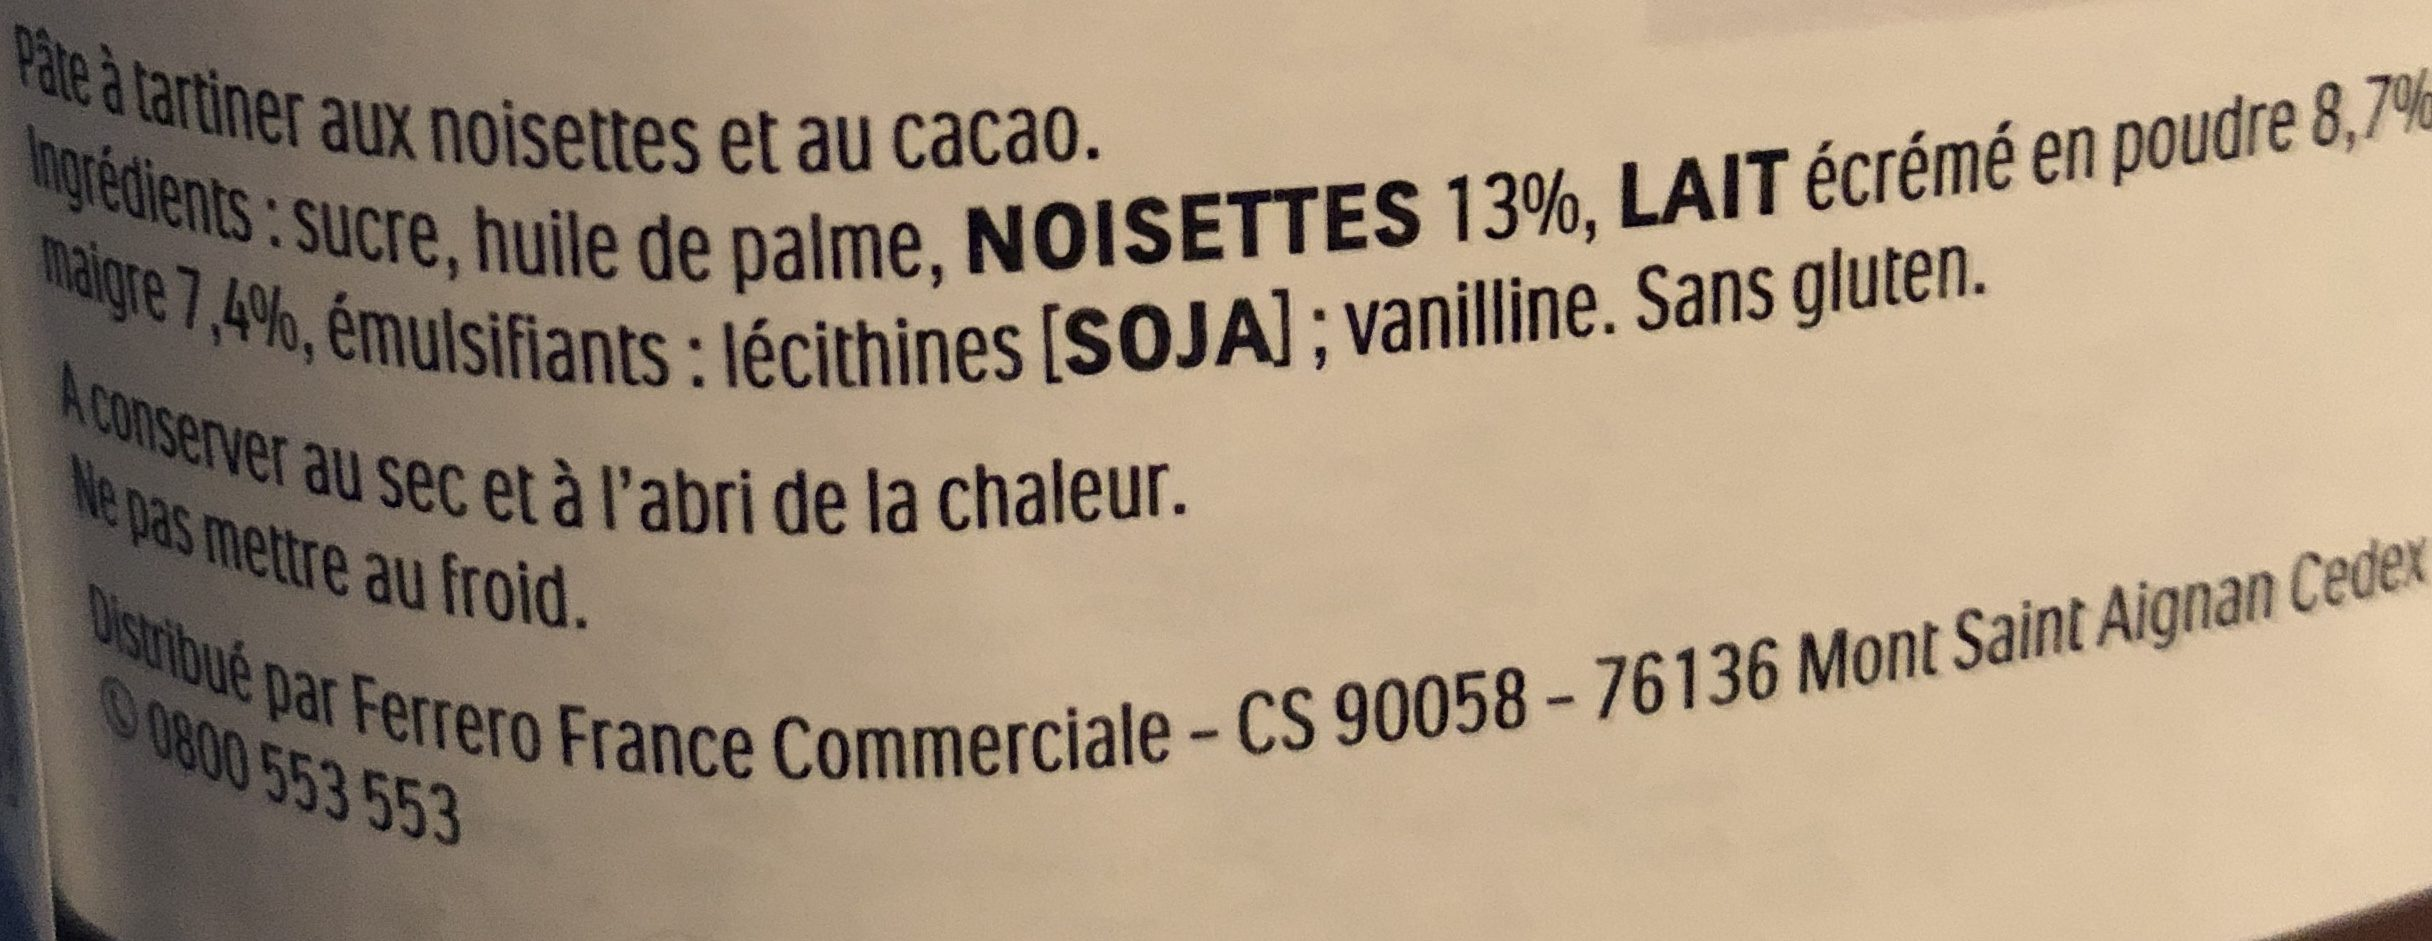 Nutella pate a tartiner noisettes-cacao t.600 pot de - Ingredients - fr